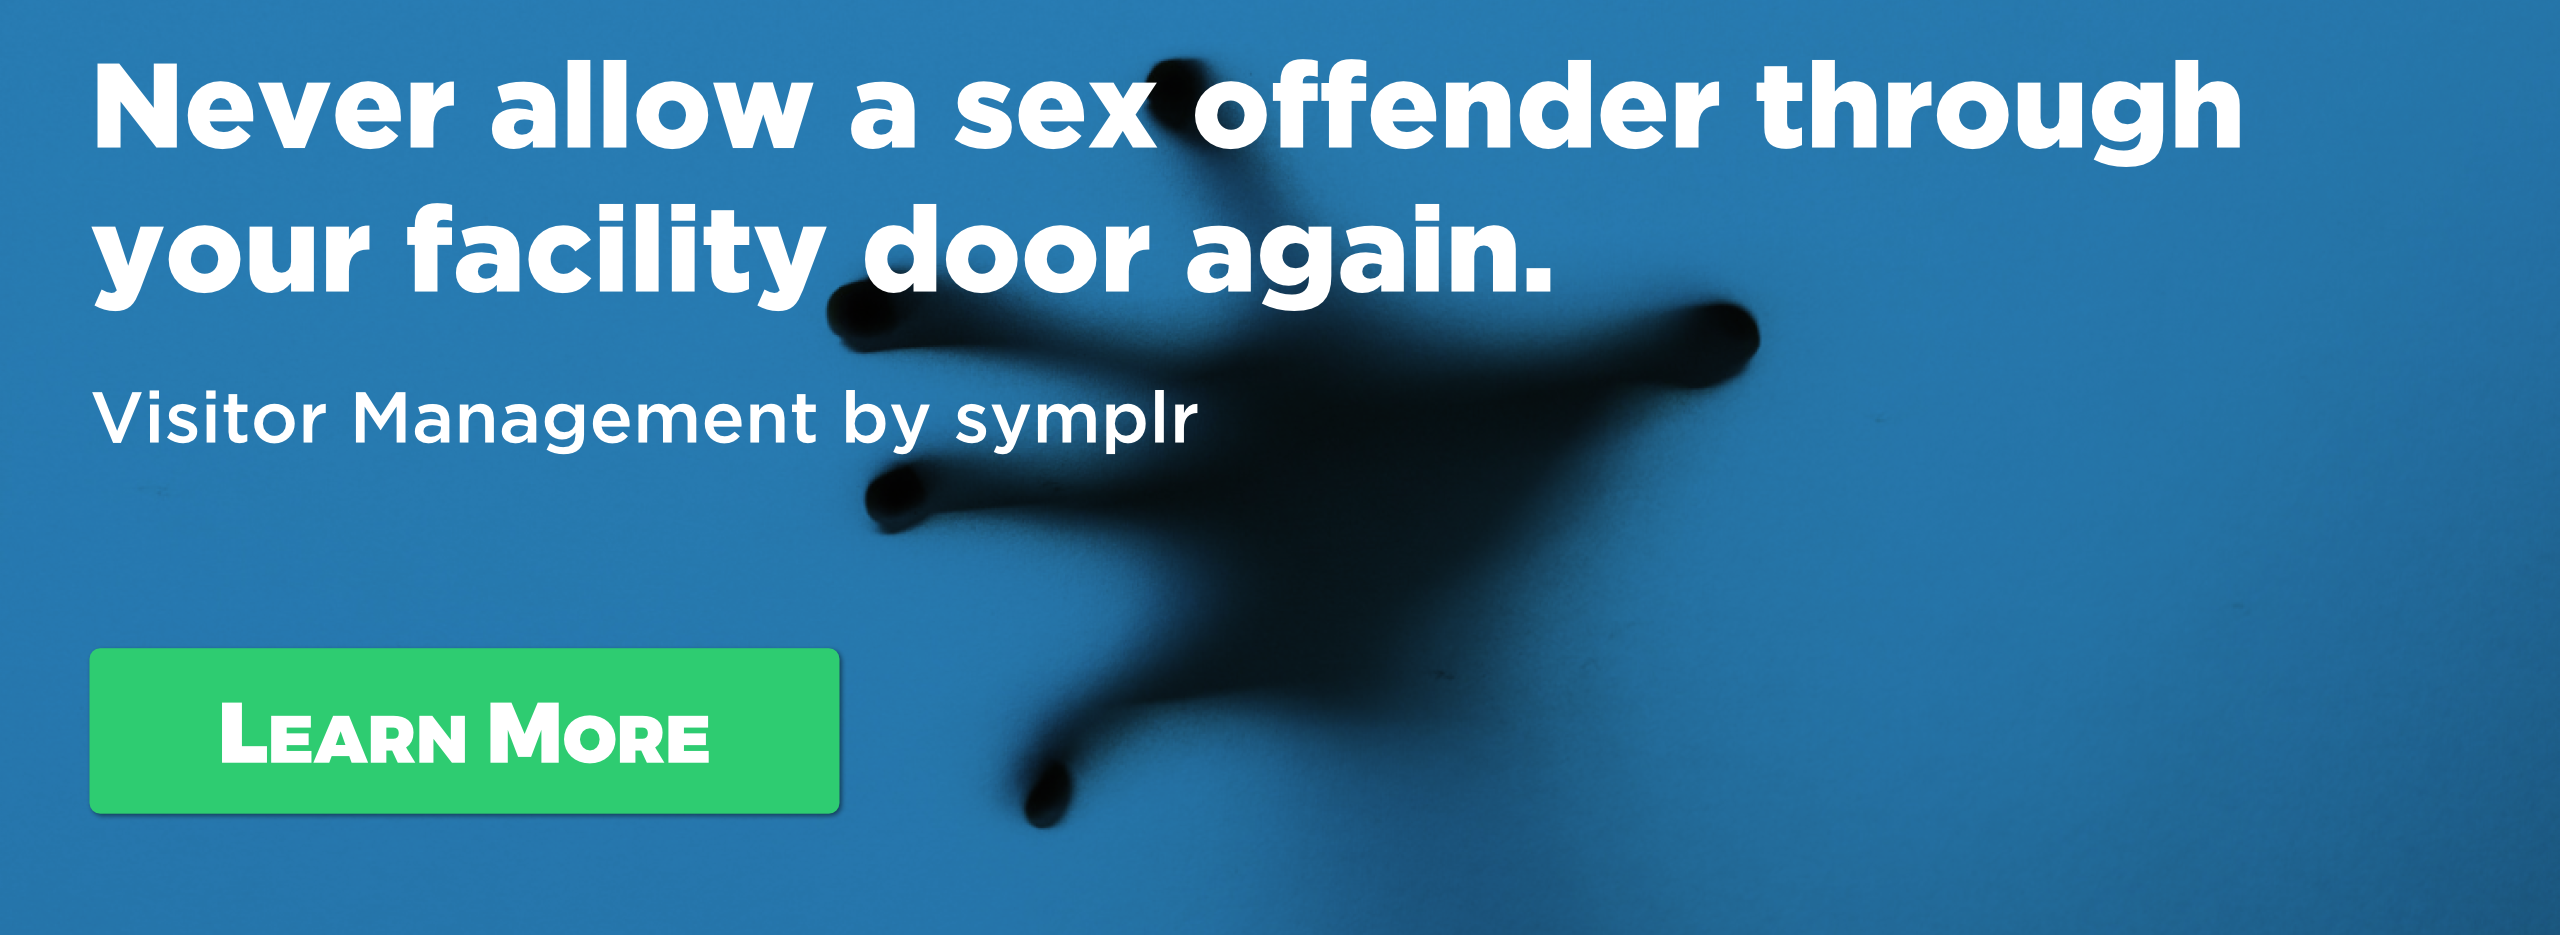 Visitor Management from symplr